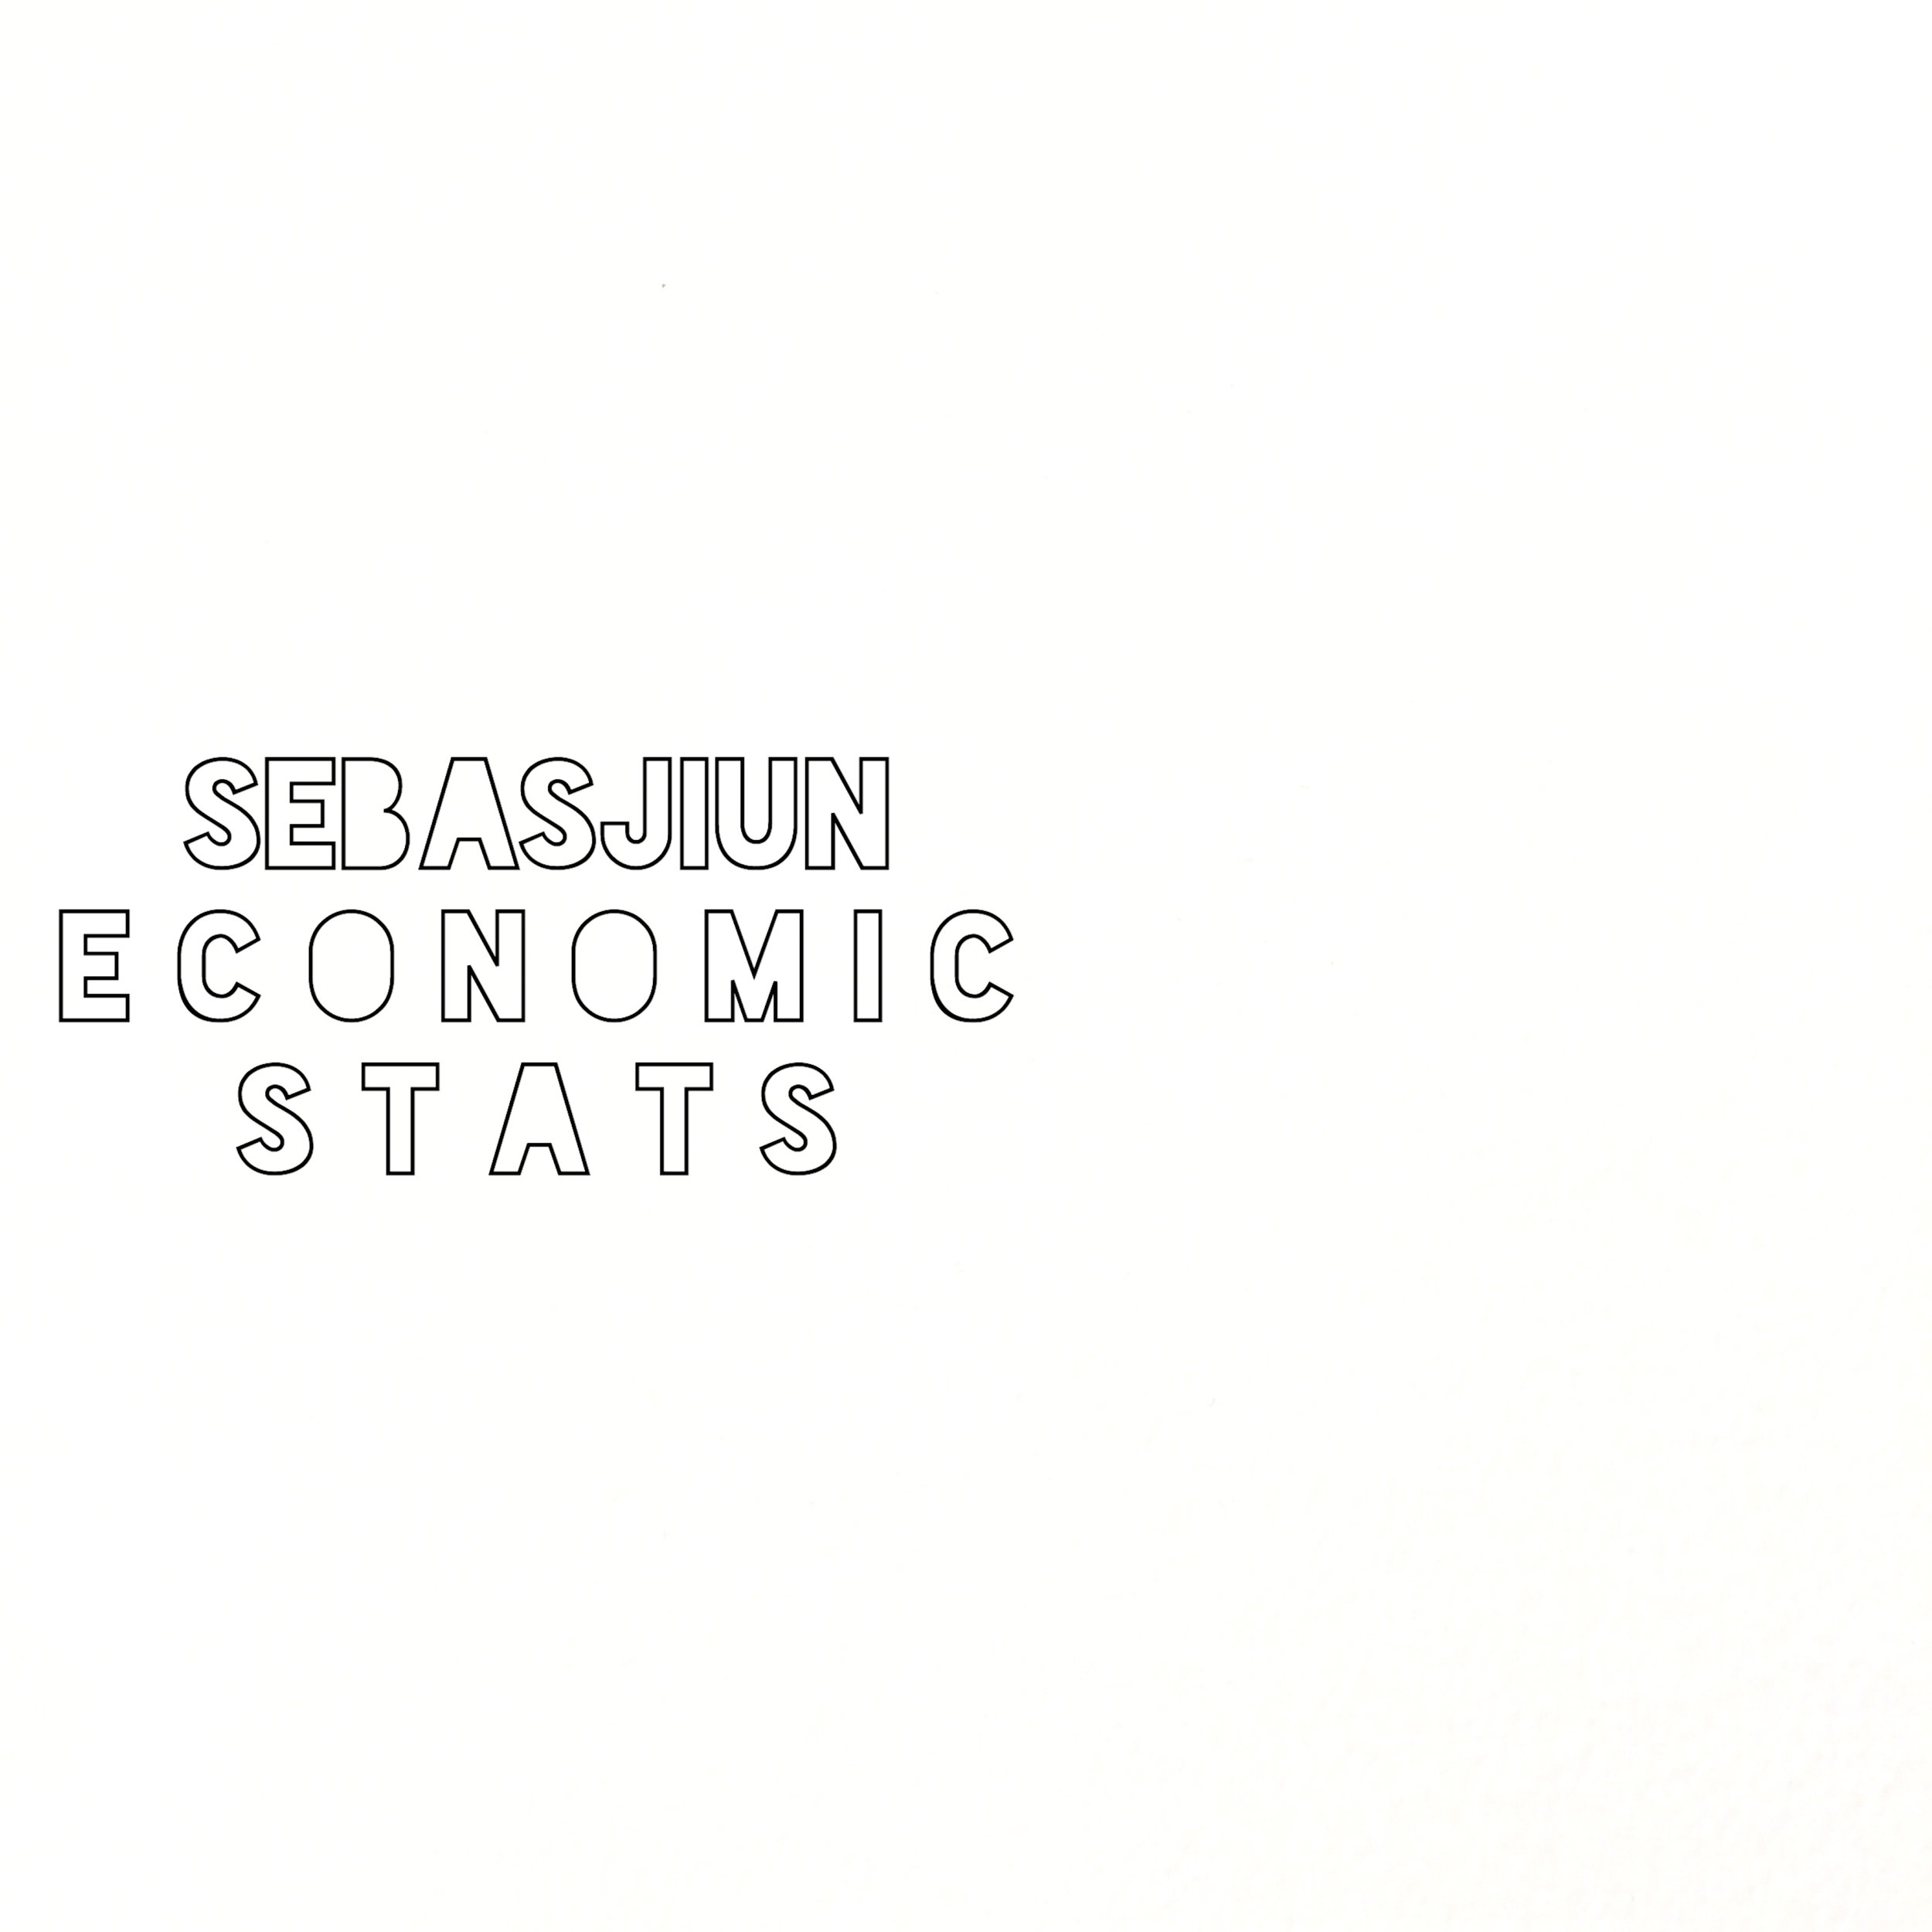 economic stats - For every period in history there's always going to be opposing political views, social unrest, & someone is inevitability going to get hurt. There are also people with dreams & hopes for happiness that make it, people that make their happiness by surviving, finding a simple means to an end, or even a new beginning. This EP tells 4 stories, 4 views, with 4 songs. Read between the beats.